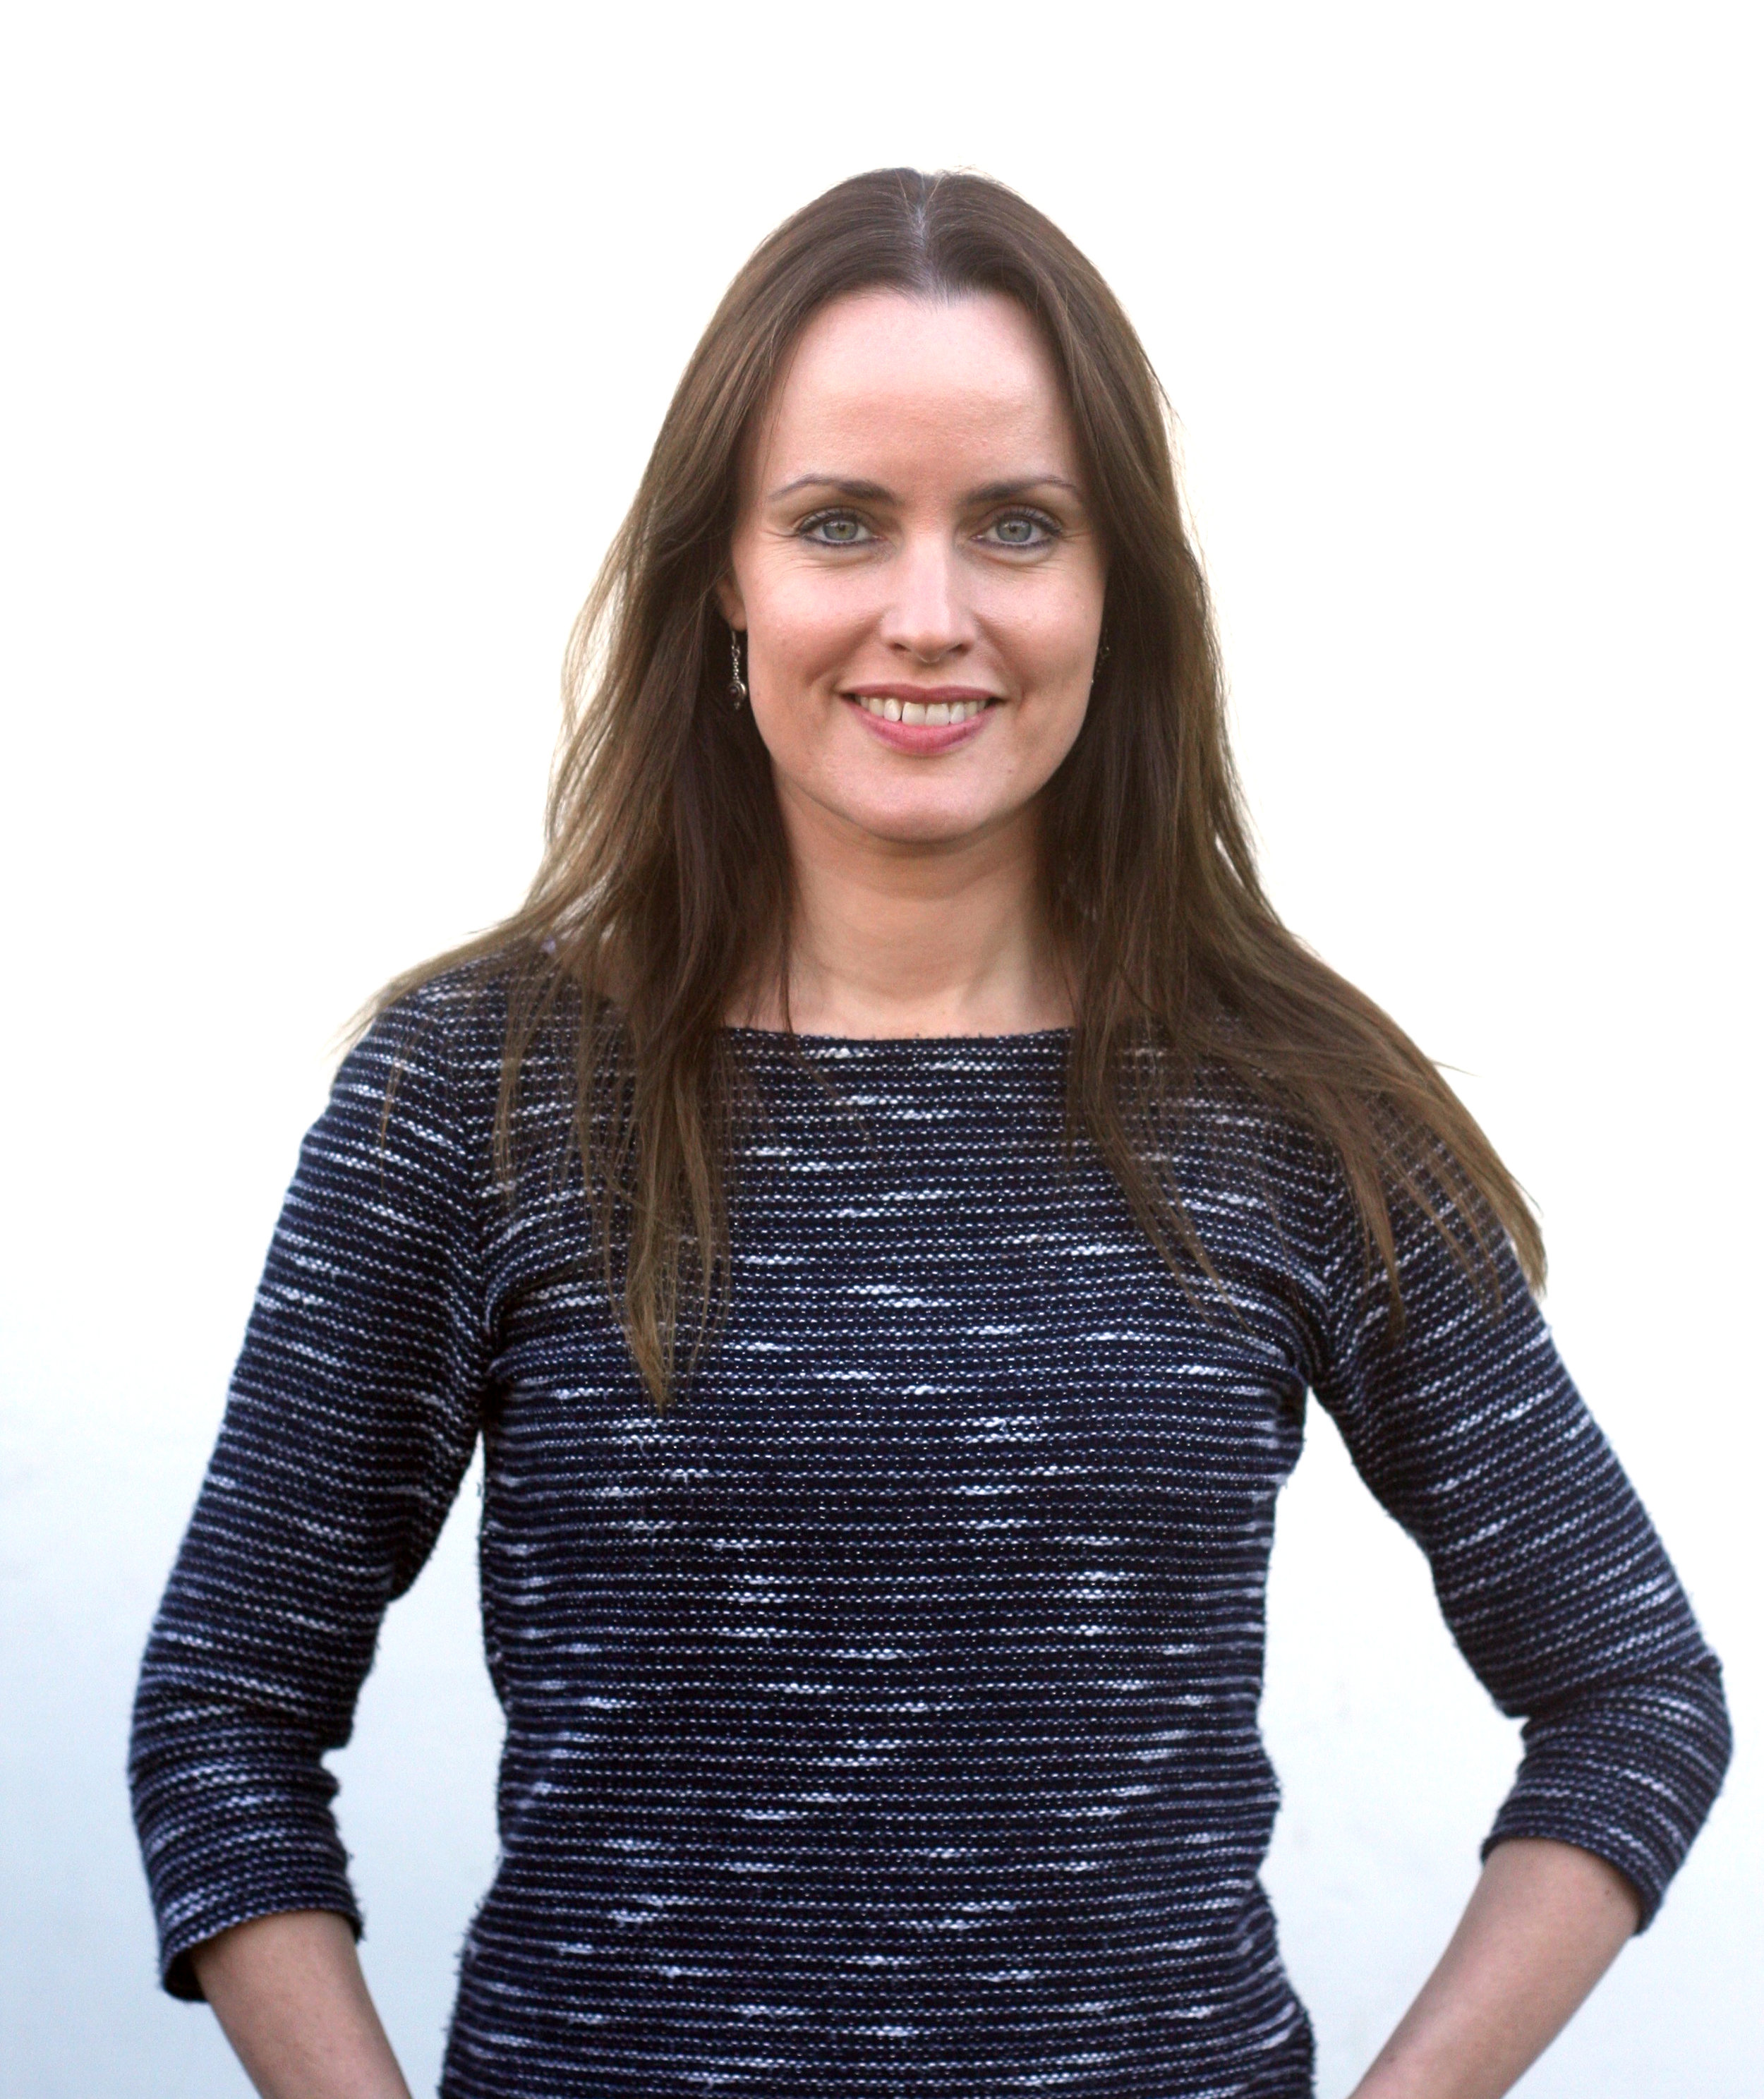 About me - I'm Juliette, a fully qualified registered nutritional therapist, with a passion for helping you feel your best through simple and achievable diet and lifestyle changes.